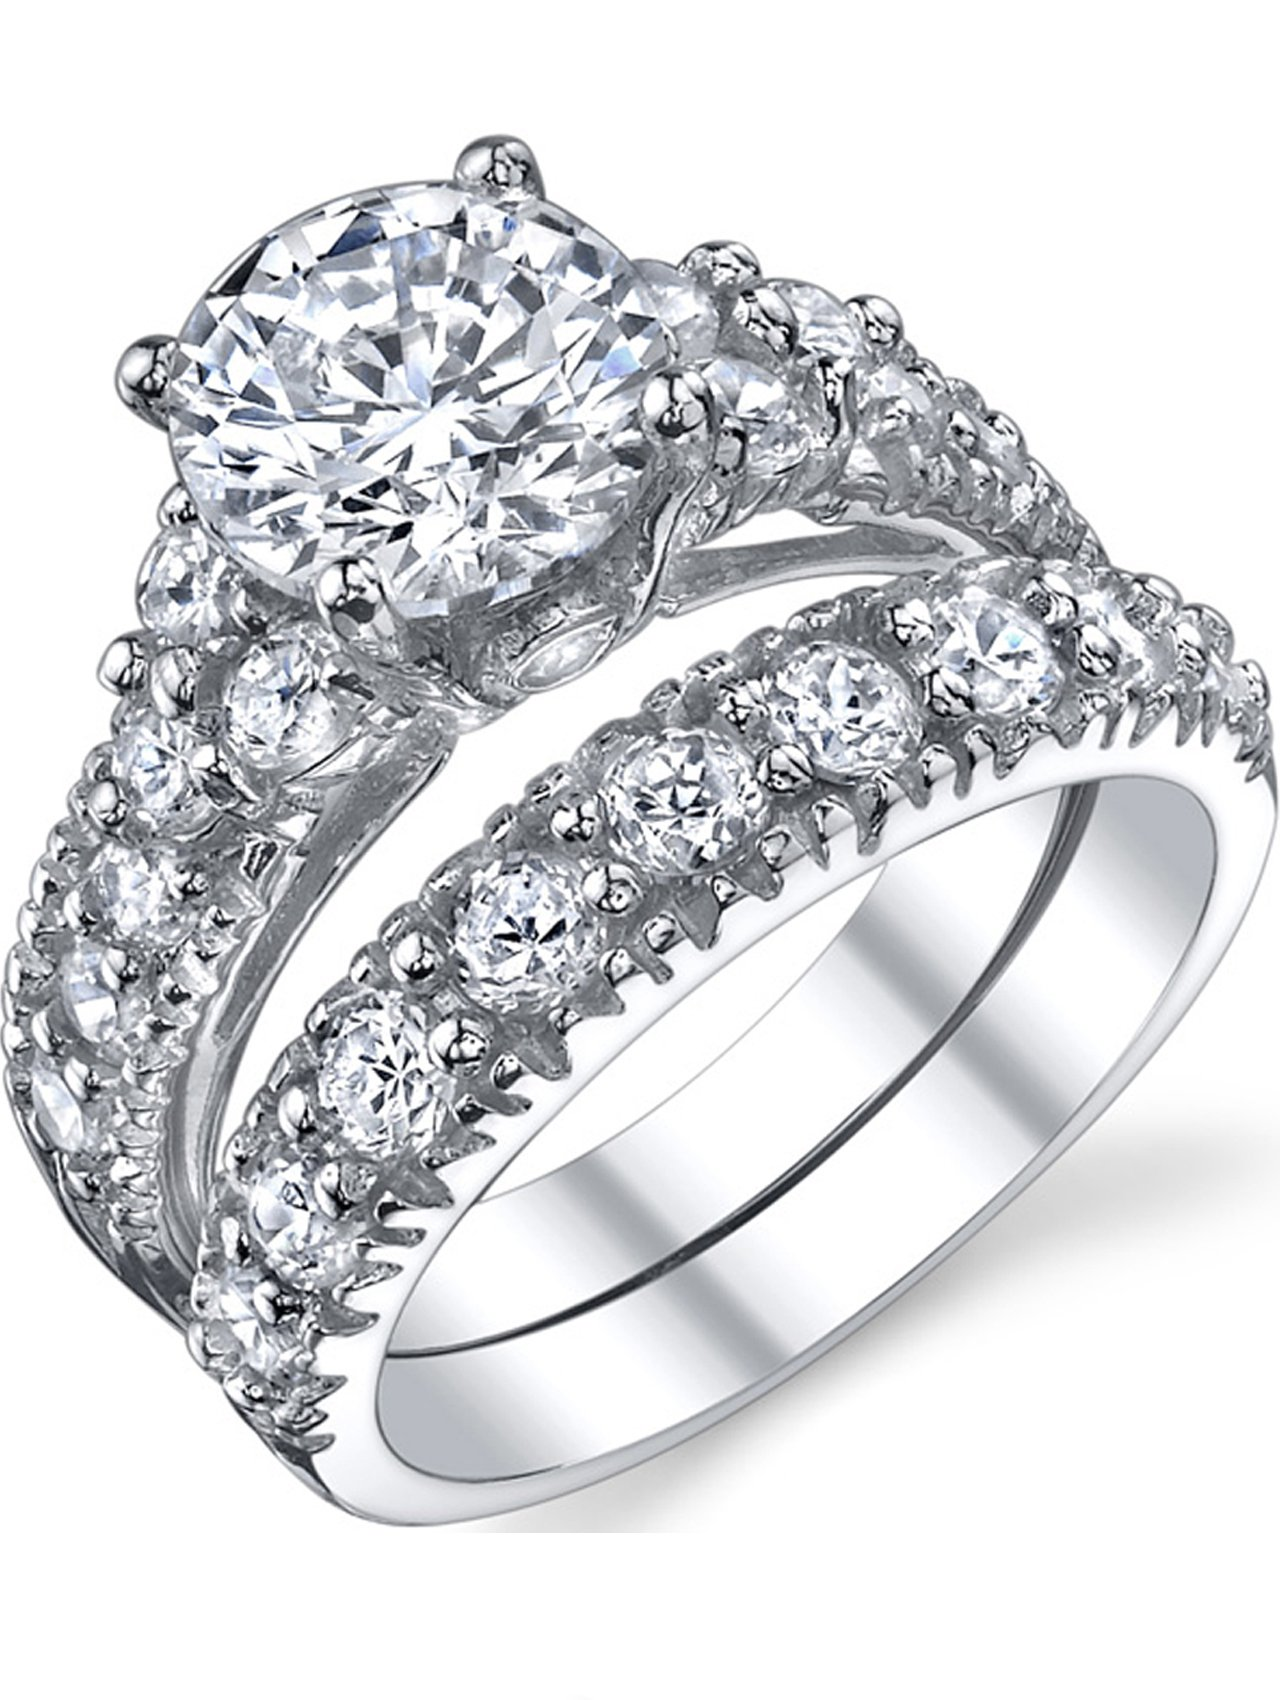 Sterling Silver Engagement Ring Bridal Set with Cubic Zirconia CZ Size 6